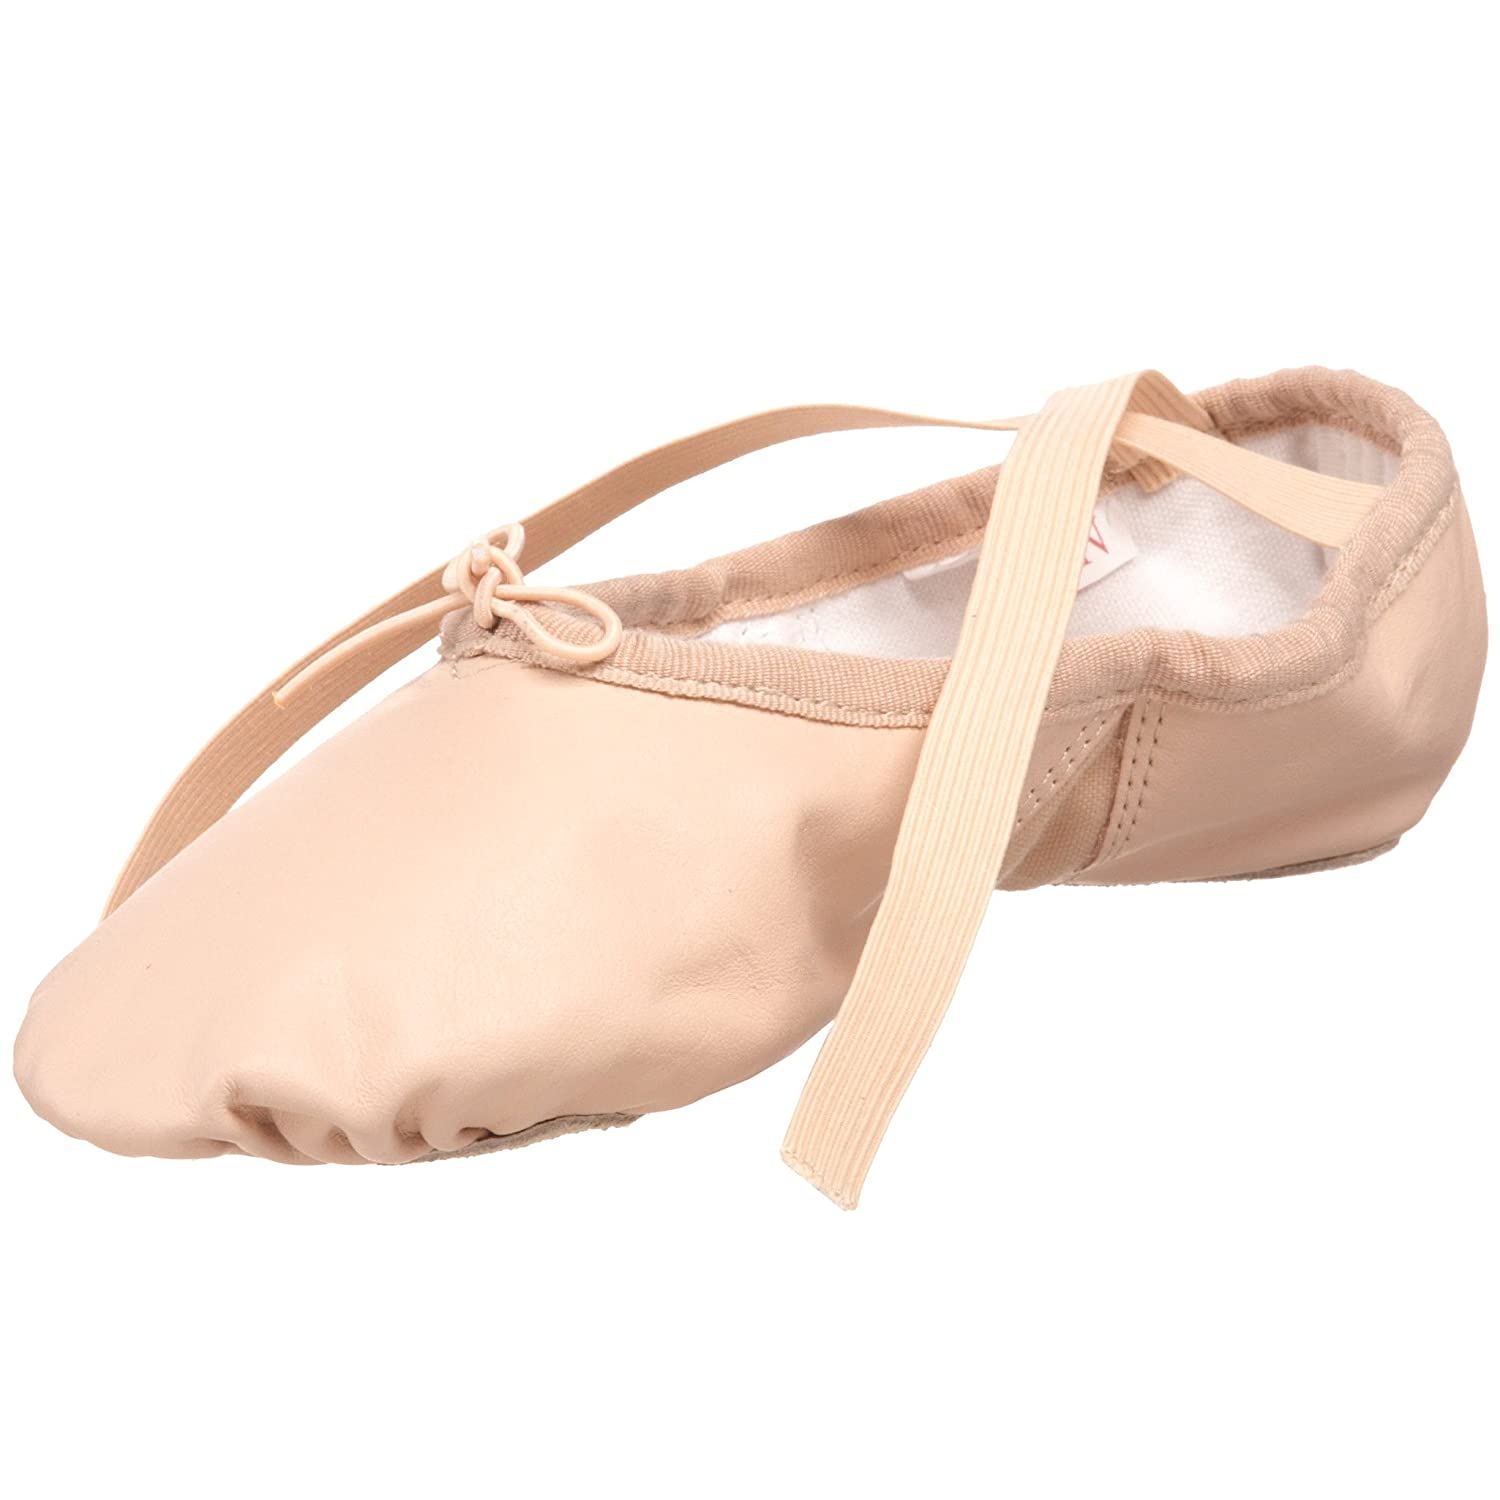 Sansha Silhouette Leather Ballet Slipper 3L